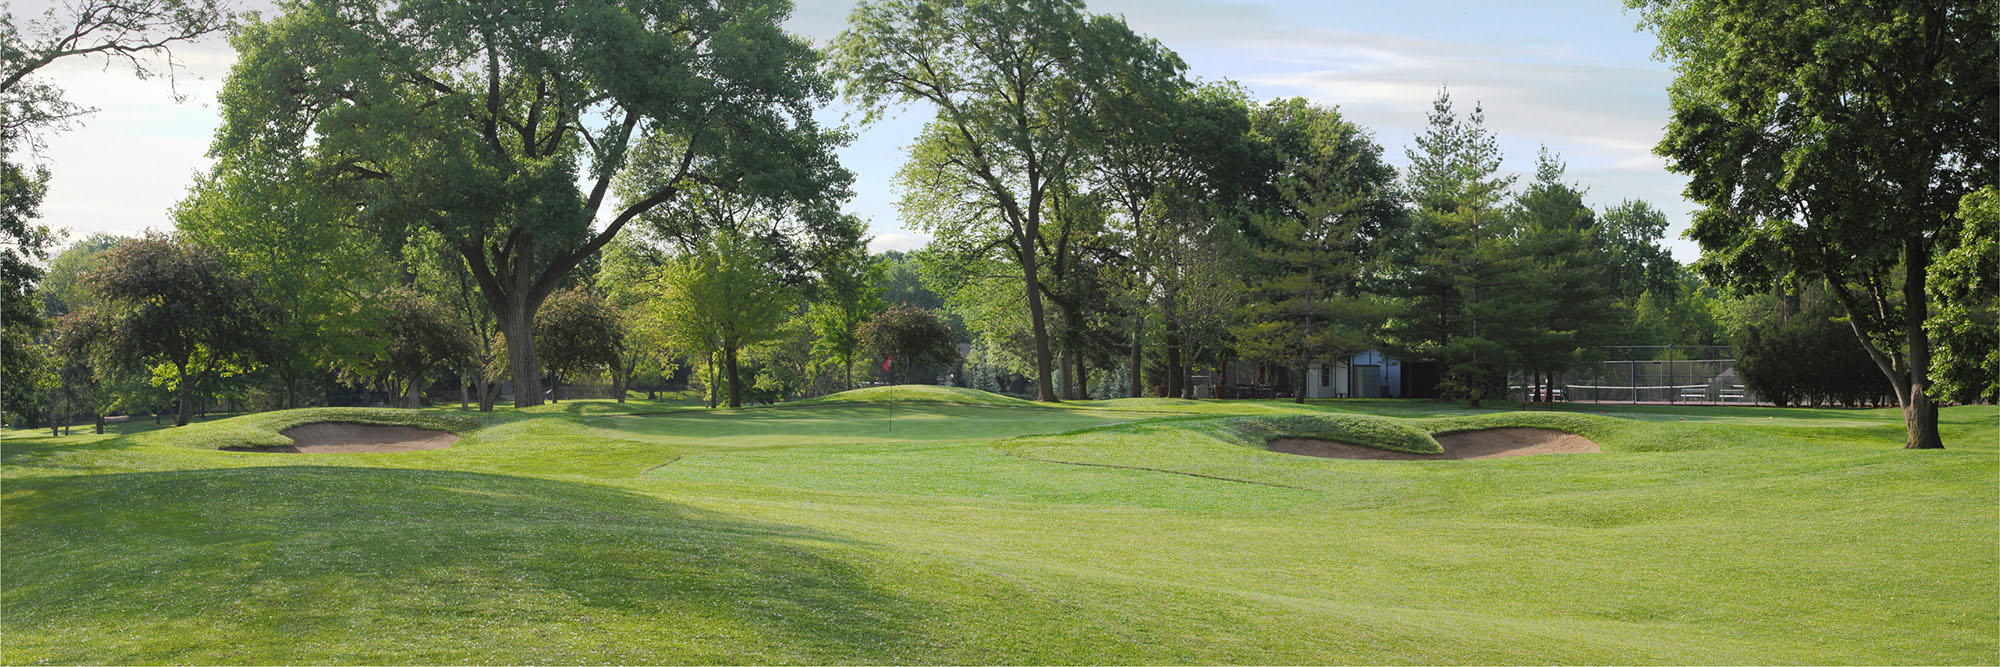 Golf Course Image - Country Club of Lincoln No. 10